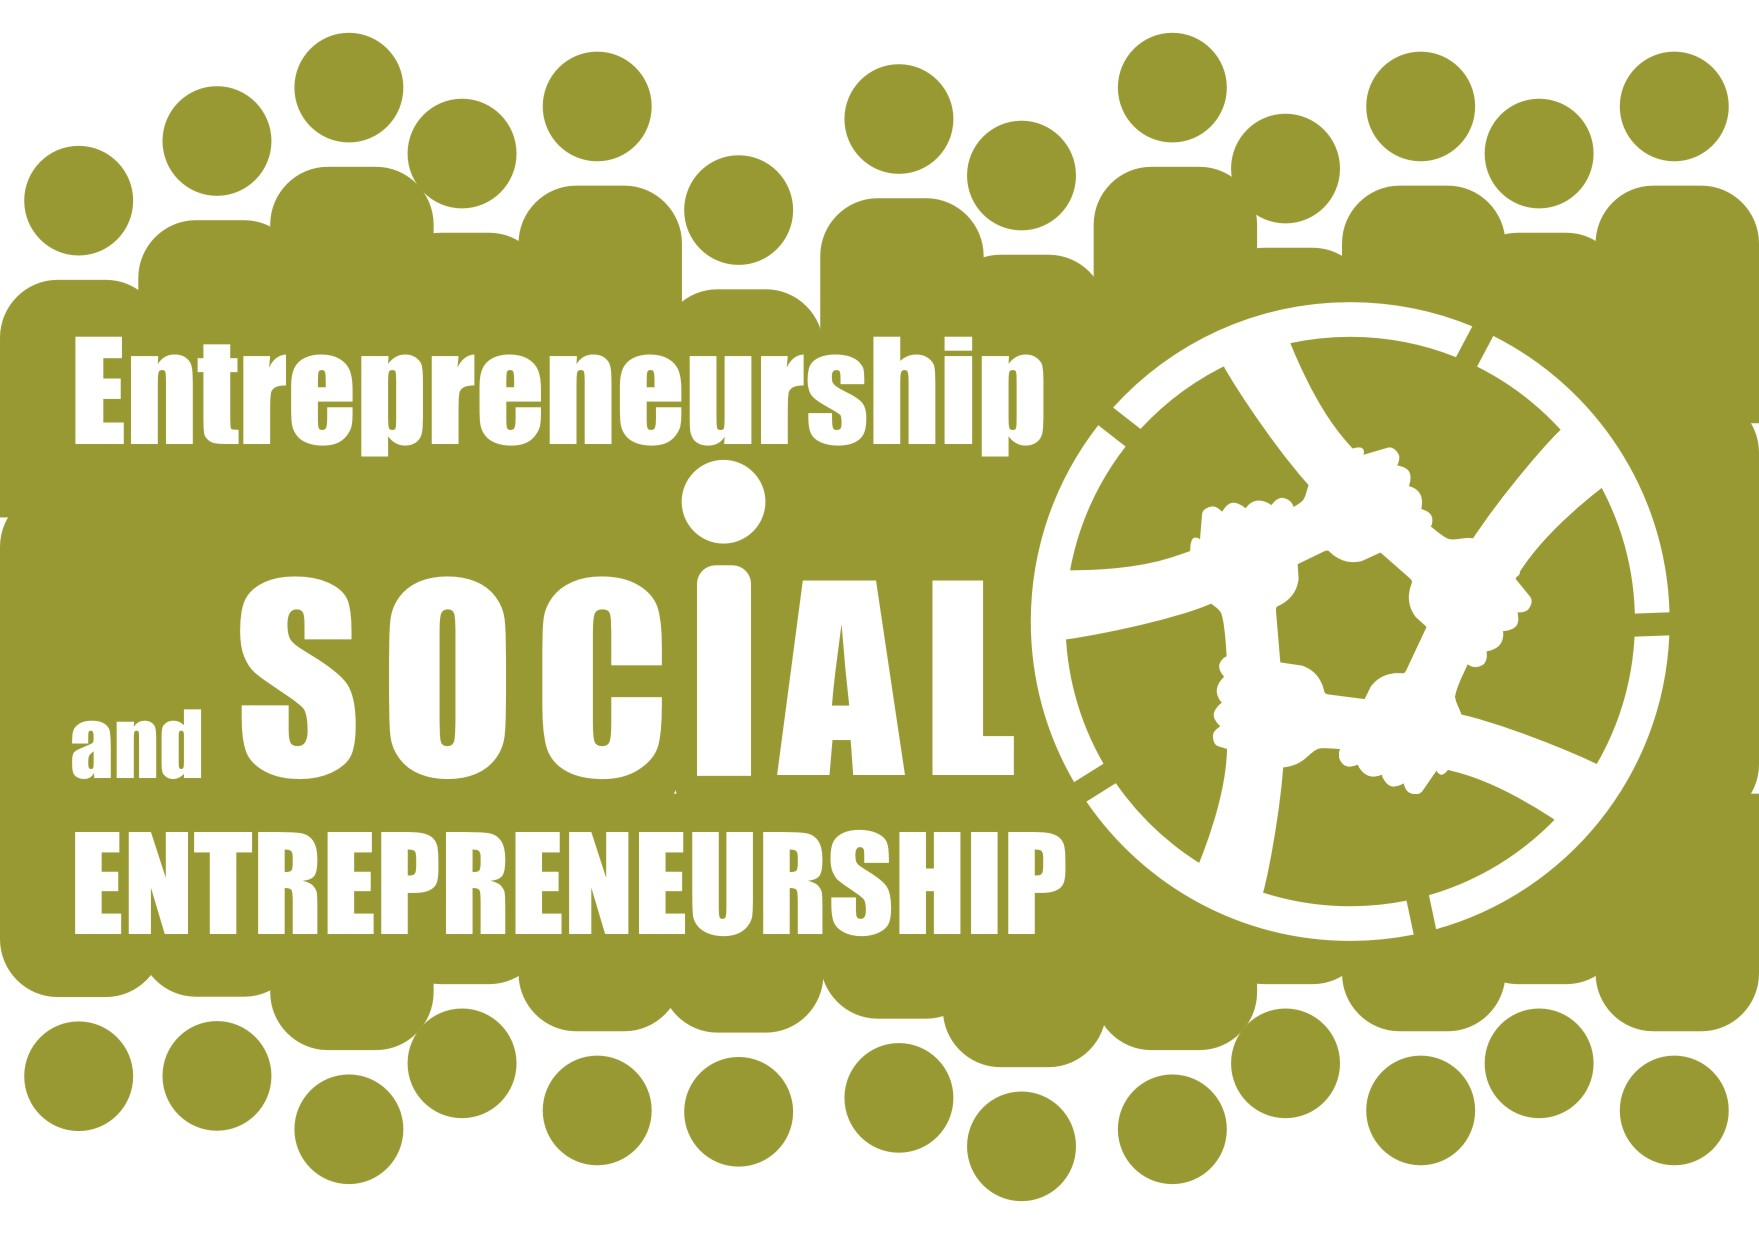 Entrepreneurship and social entrepreneurship